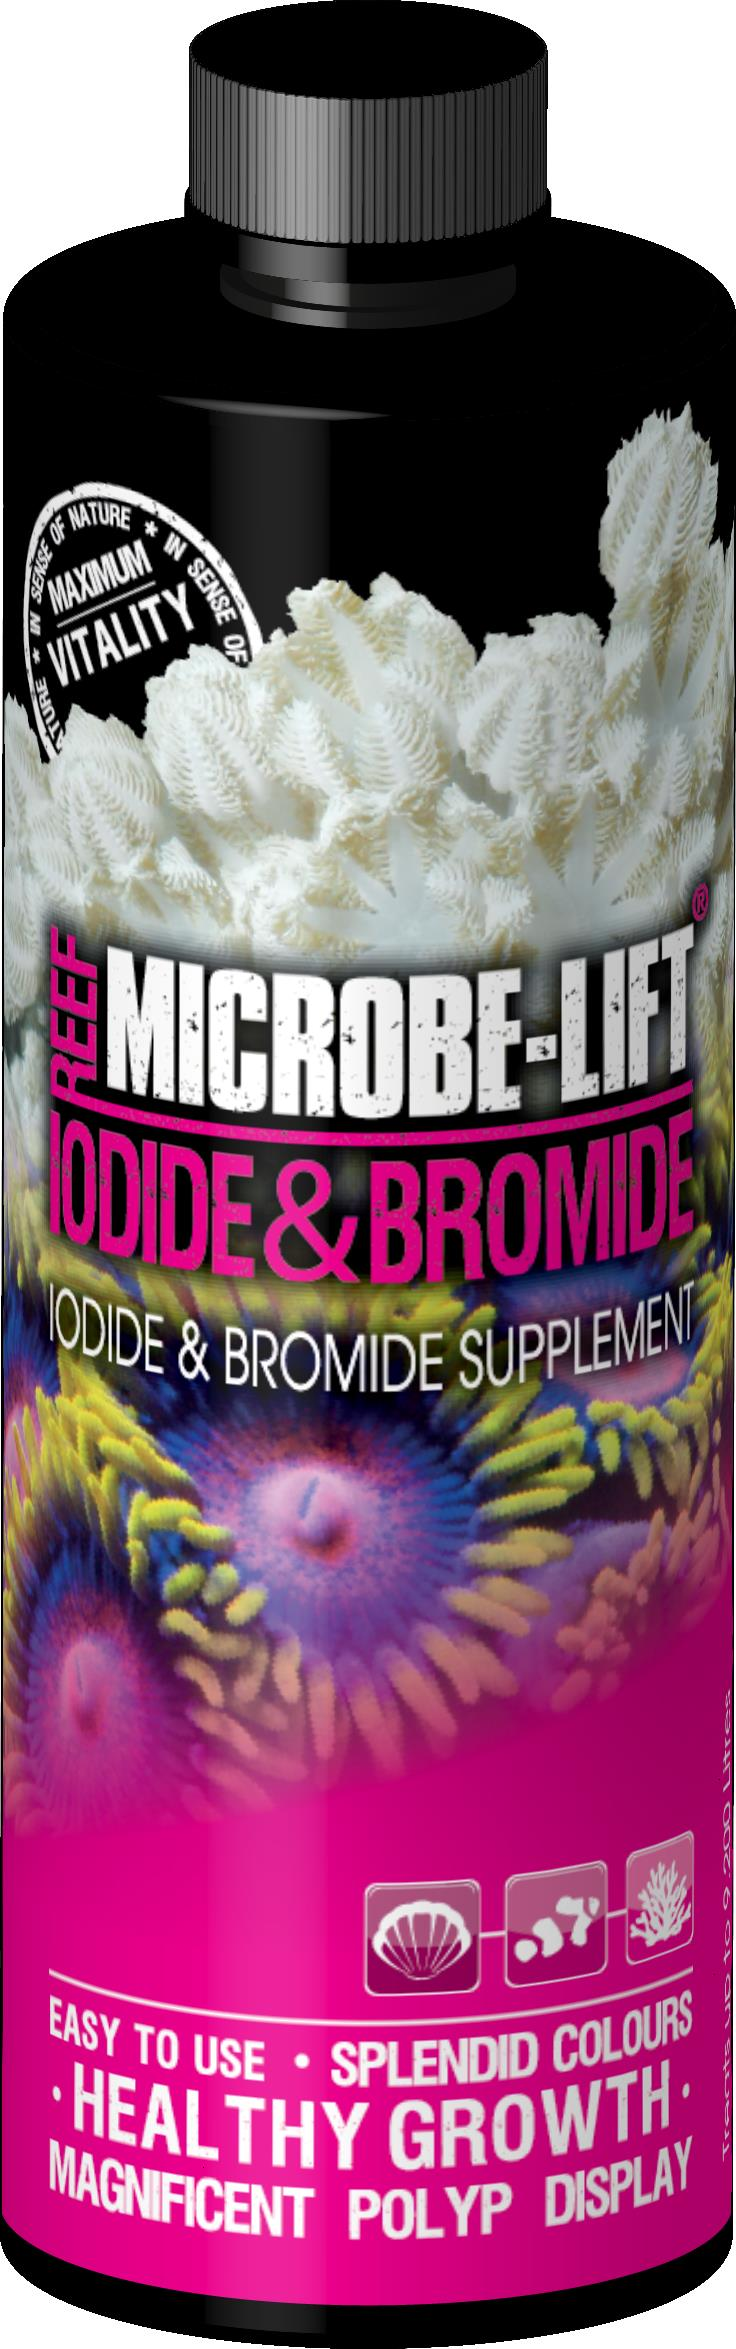 Microbe-Lift Iodide & Bromide 473ml